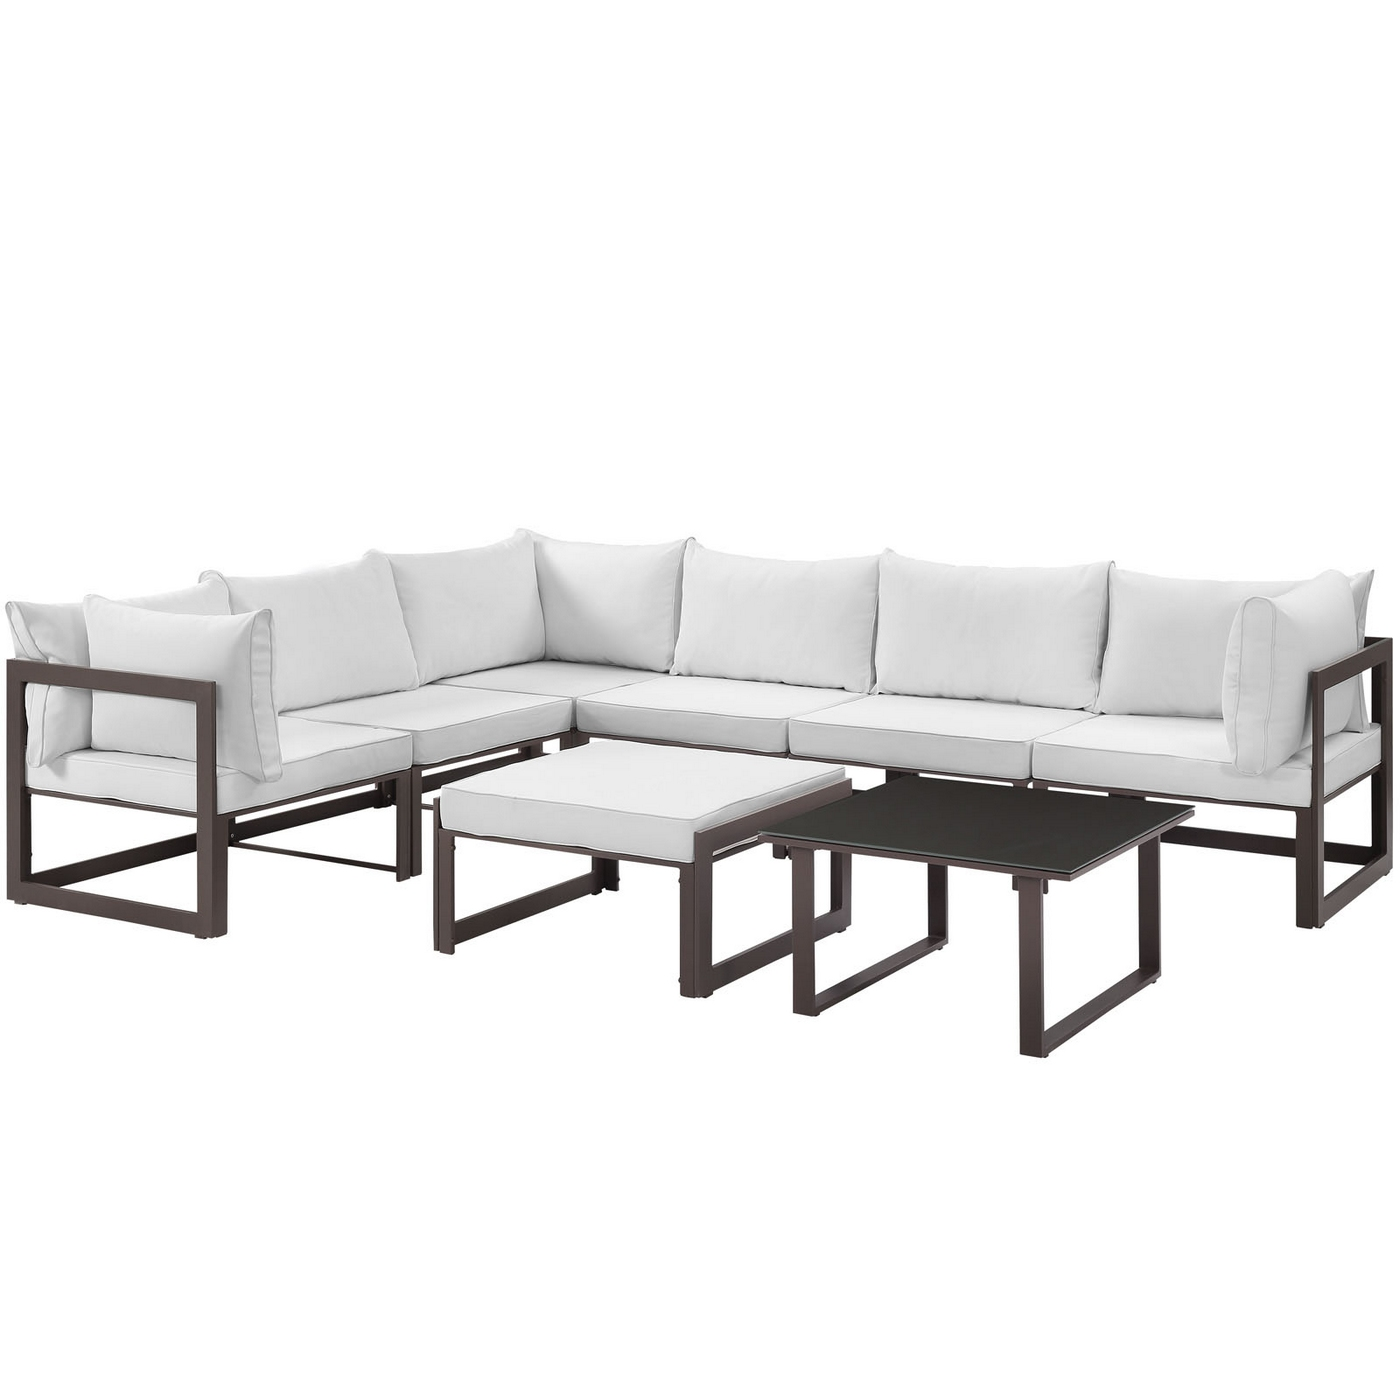 Fortuna 8 Piece Outdoor Patio Sectional Sofa Set w/Upholster